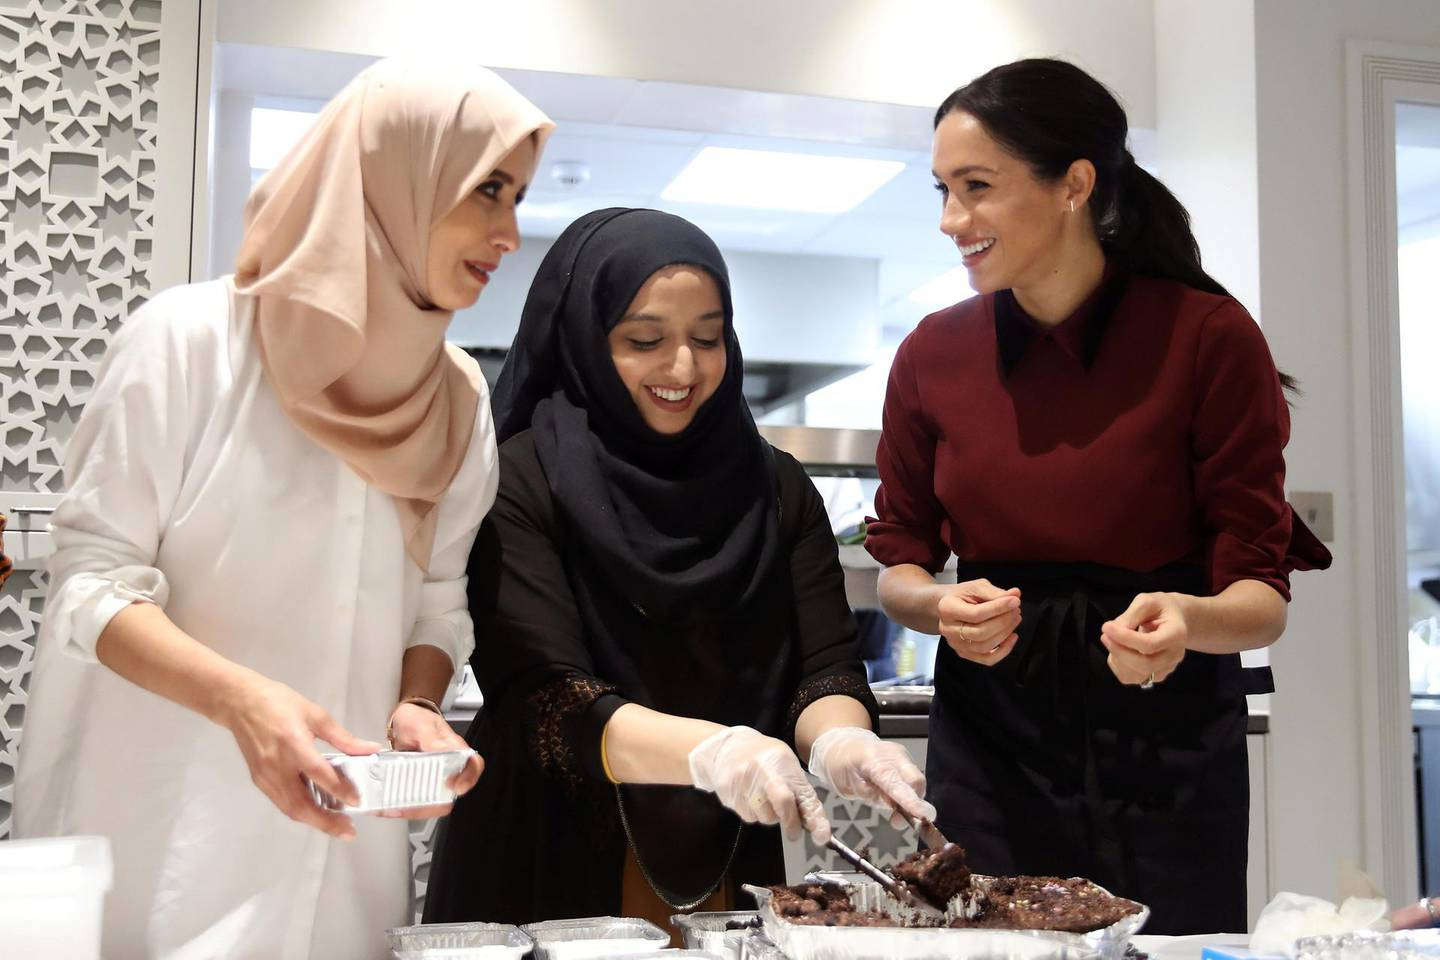 Britain's Meghan, Duchess of Sussex visits the Hubb Community Kitchen to see how funds raised by the 'Together: Our Community' cookbook are making a difference at Al Manaar, in London, Britain, November 21, 2018. Chris Jackson/Pool via REUTERS